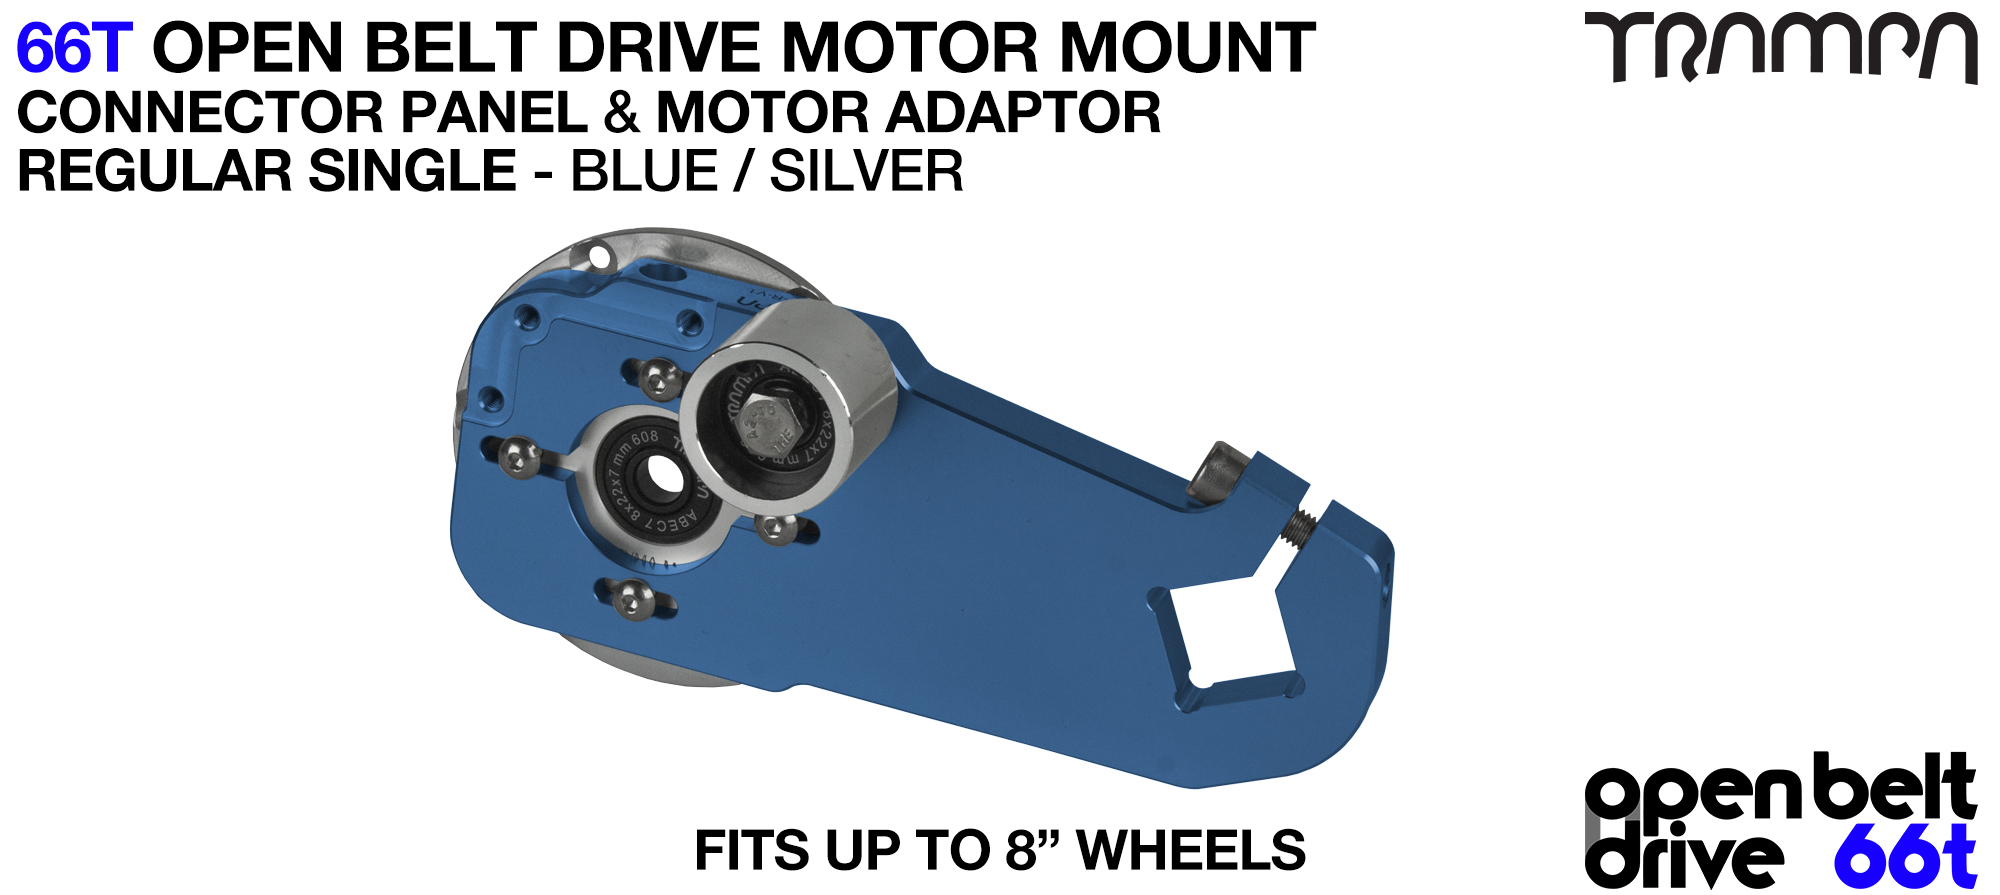 66T OPEN BELT DRIVE Motor Mount & Motor Adaptor - SINGLE BLUE